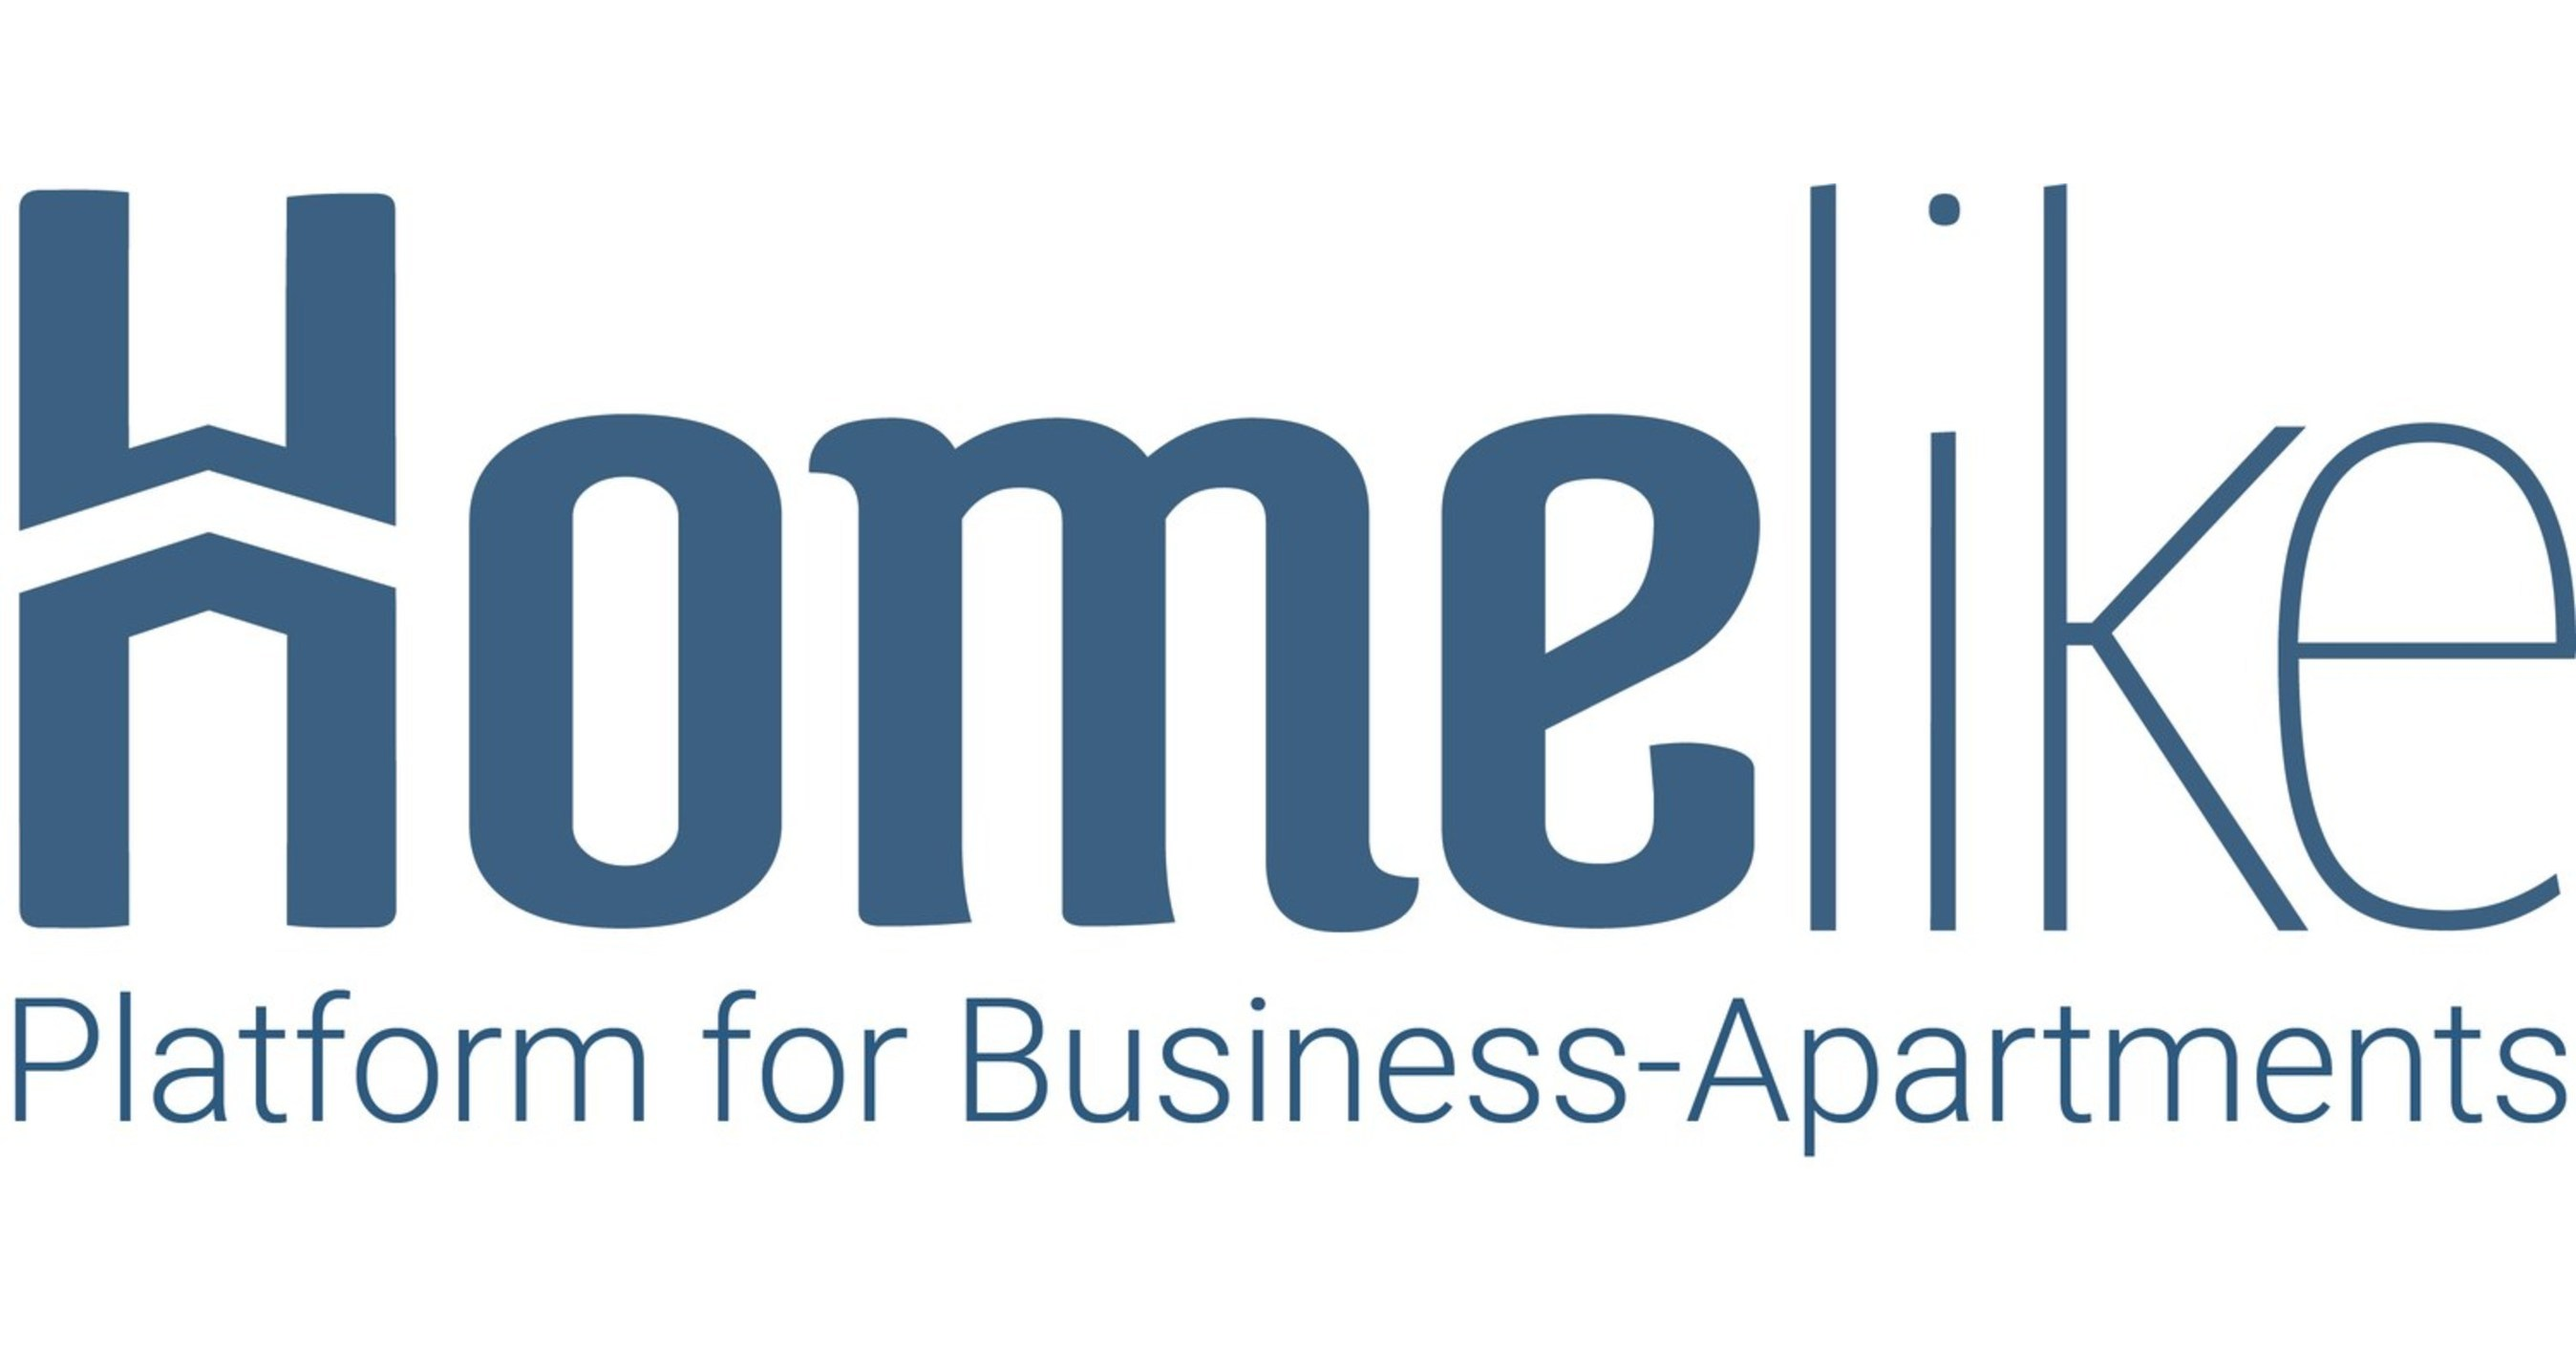 Long-Term Business Apartment Marketplace Homelike Raises $14M From Spark Capital and Existing Investors to Strengthen Market Leadership